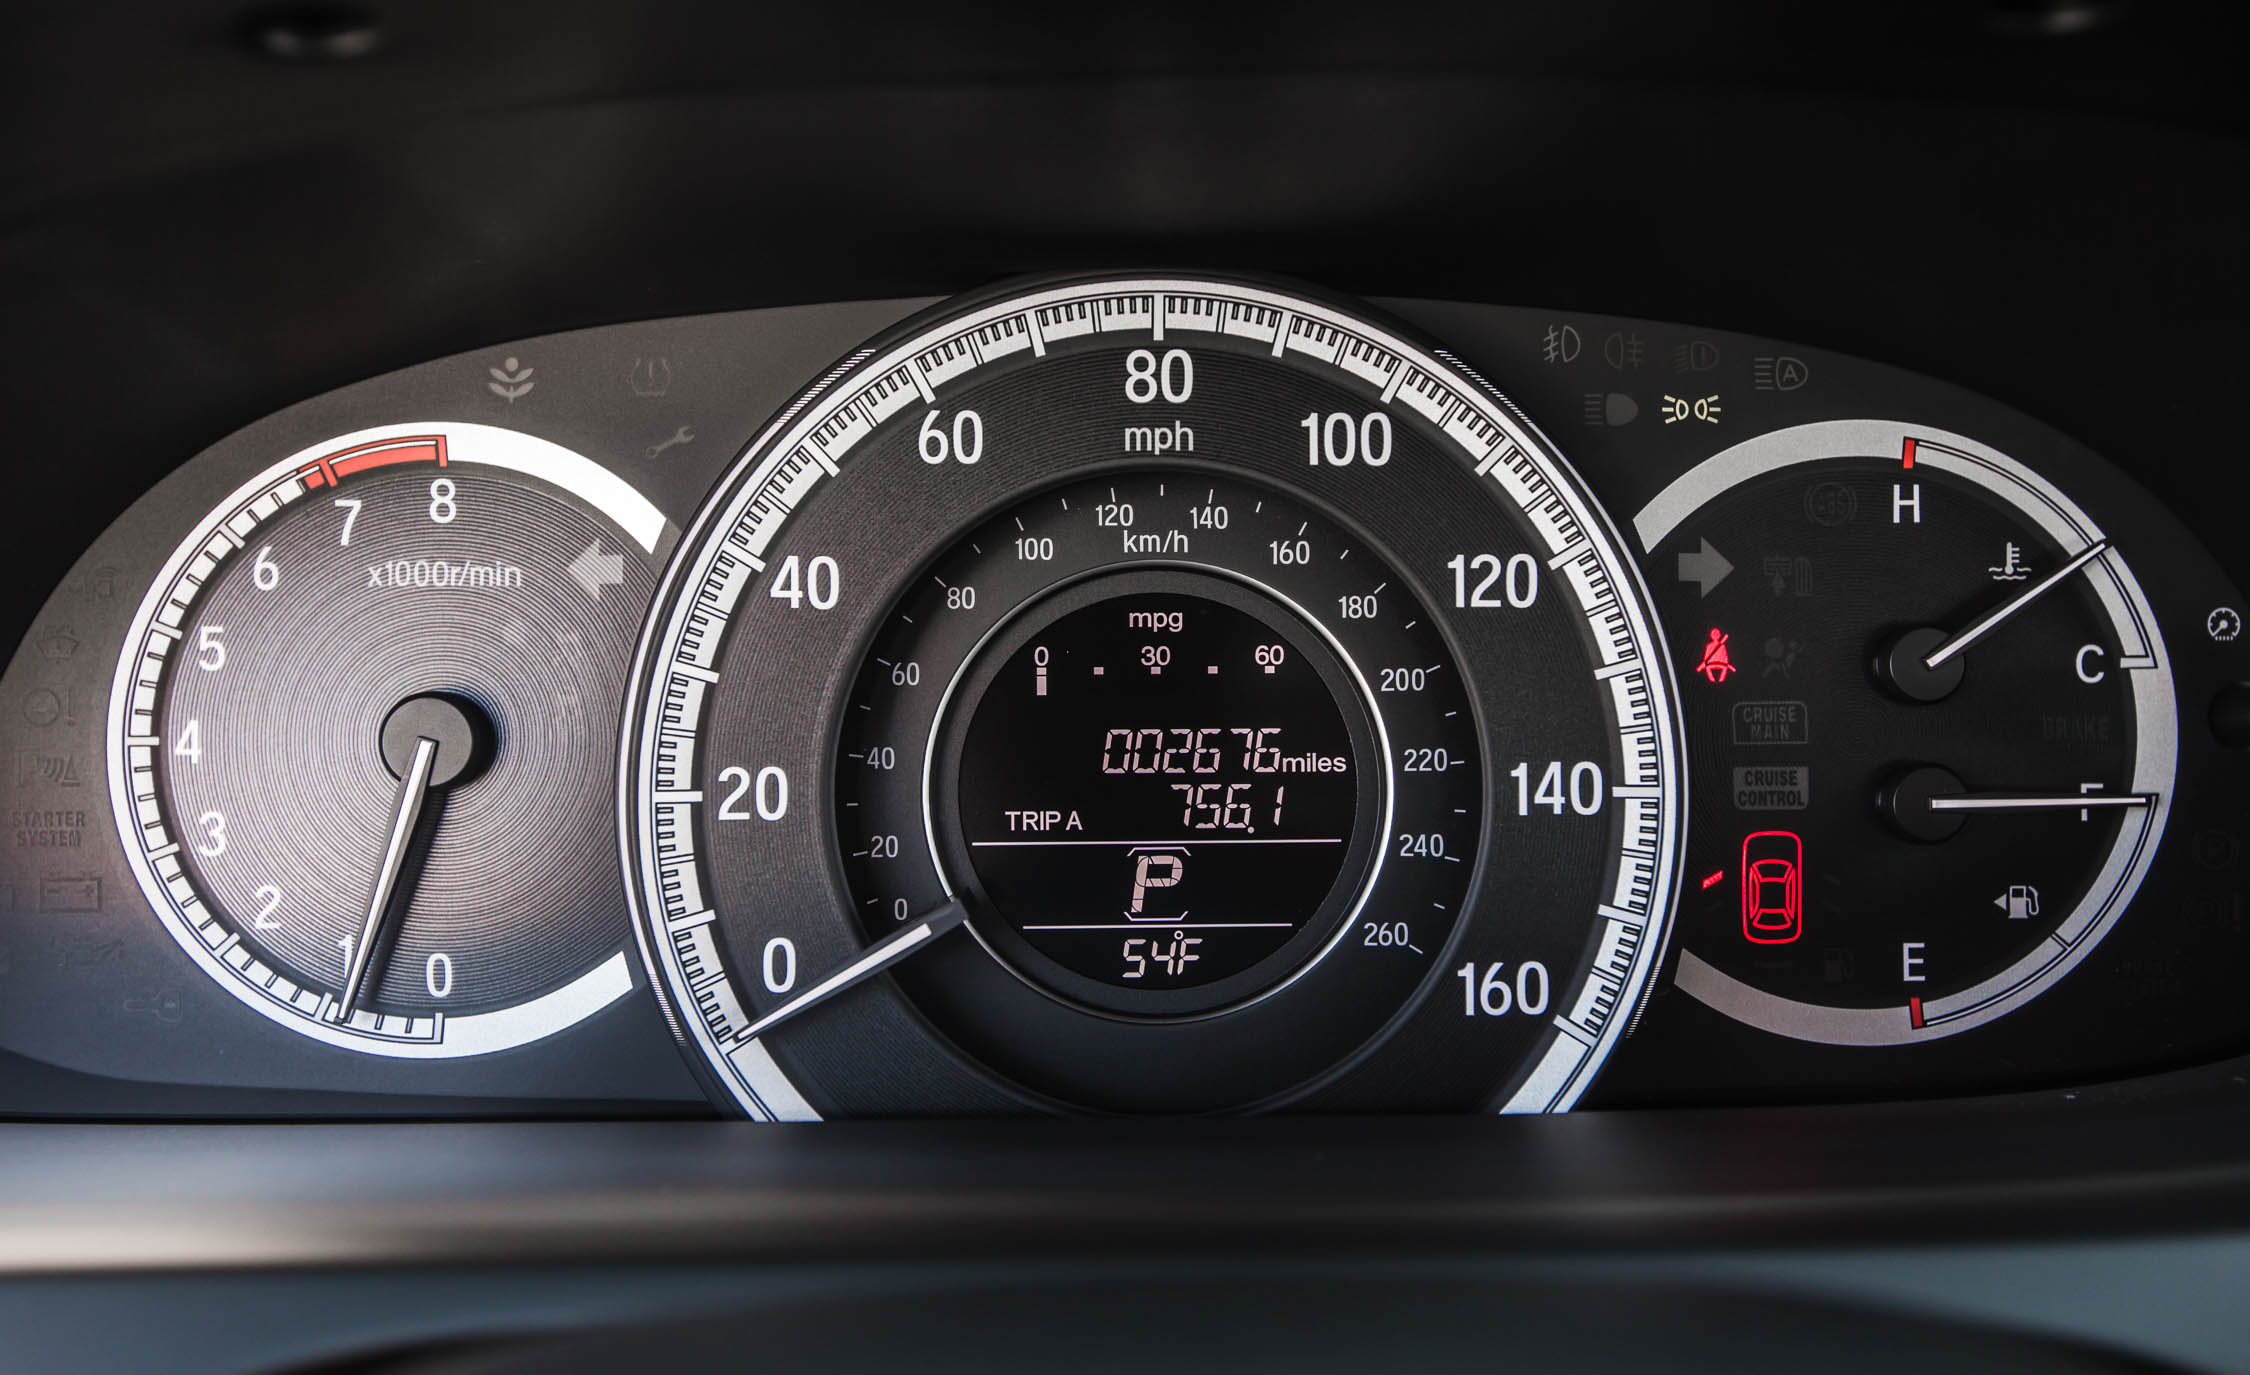 2016 Honda Accord EX Interior Speedometer